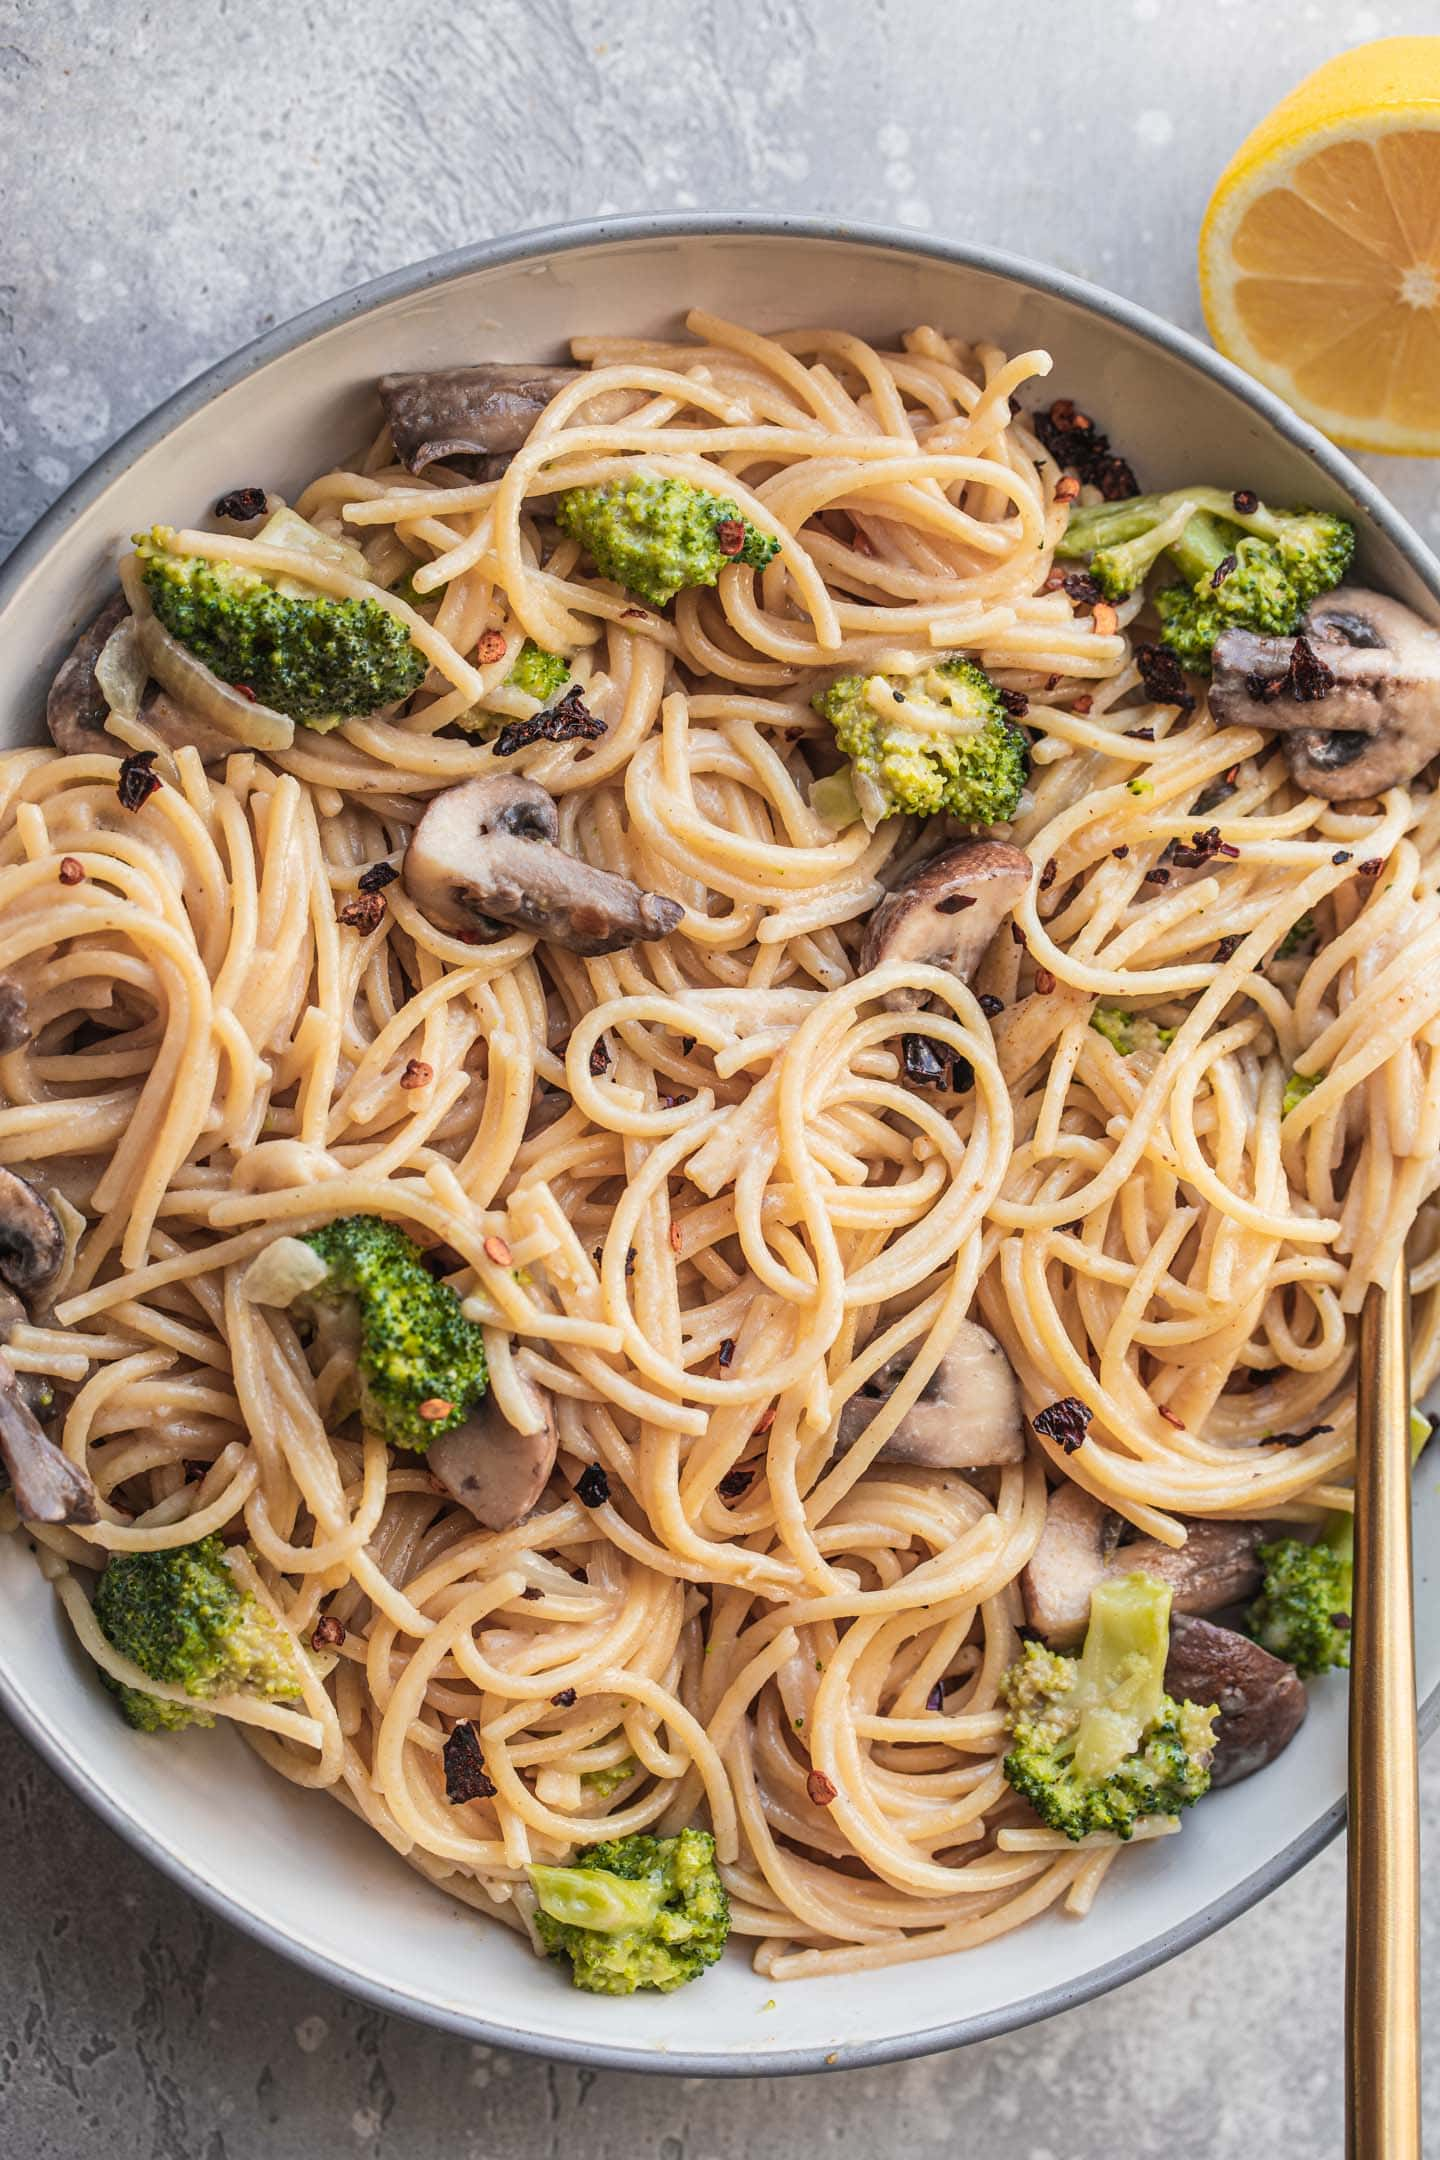 Pasta with a coconut sauce and broccoli